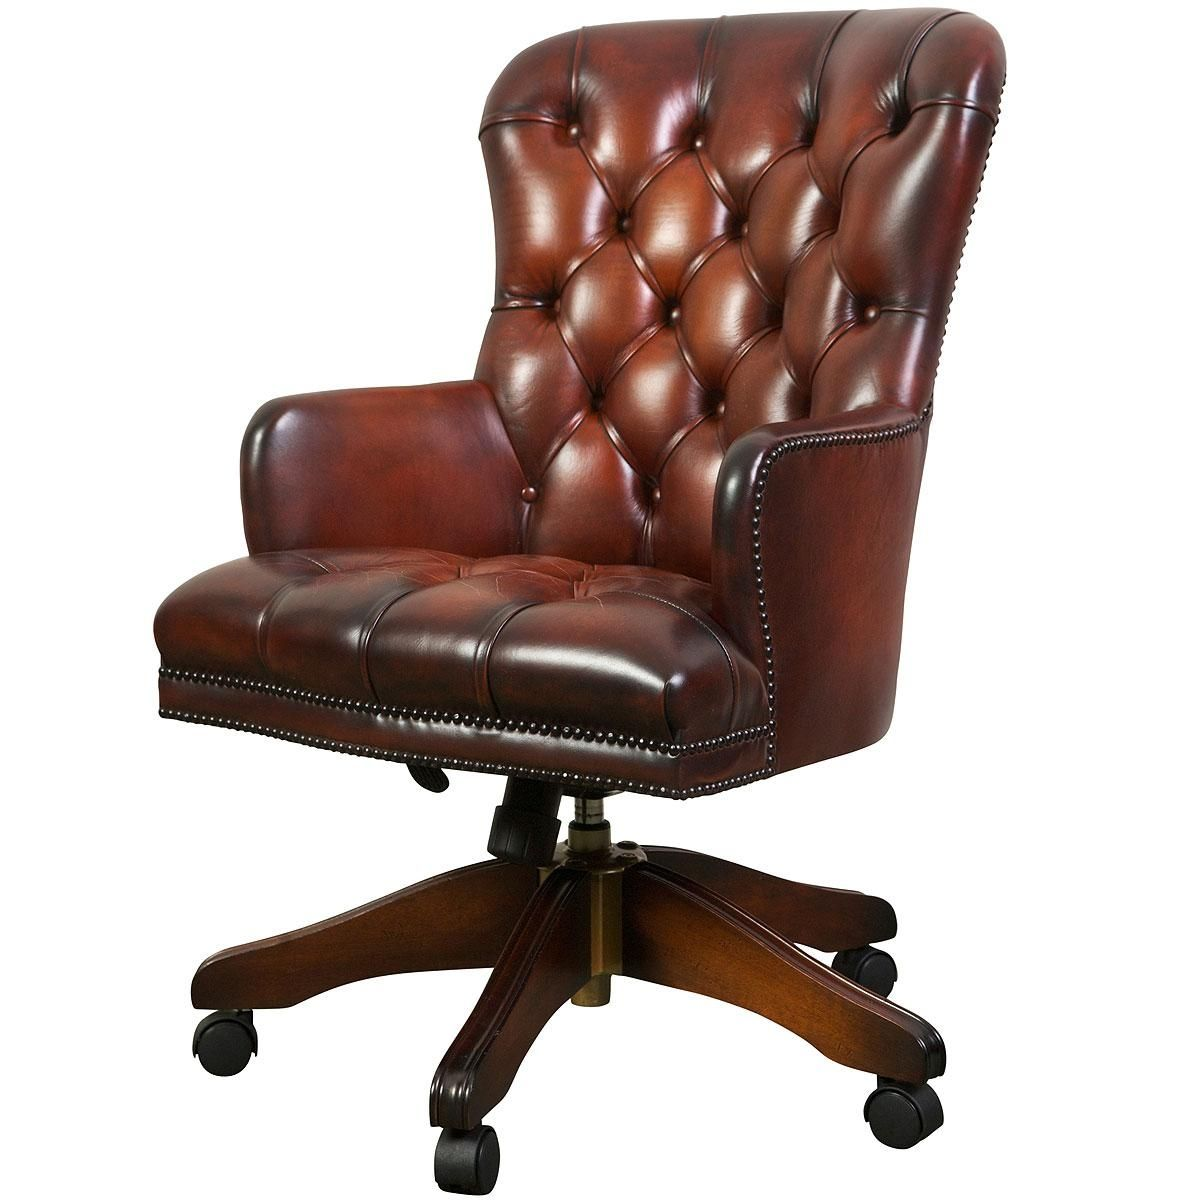 Queen Anne Leather Desk Chair httpdevintaverncom Pinterest